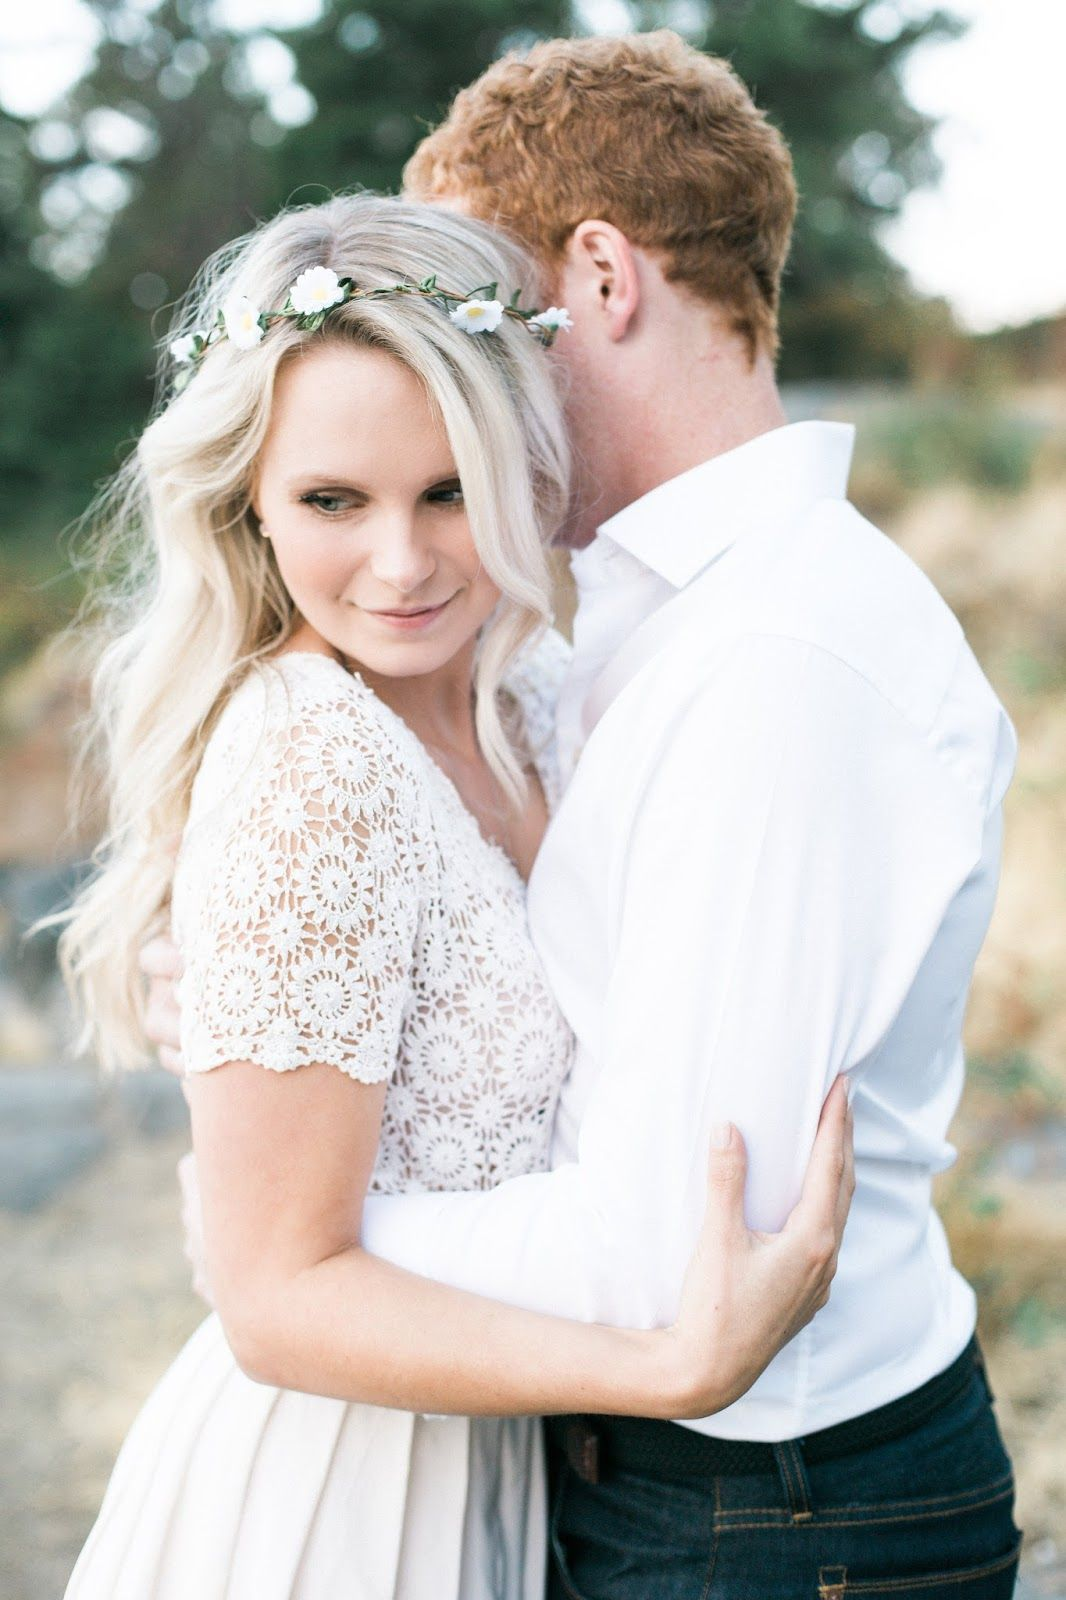 Our engagement photos part ii vintage lace flower crowns and boho